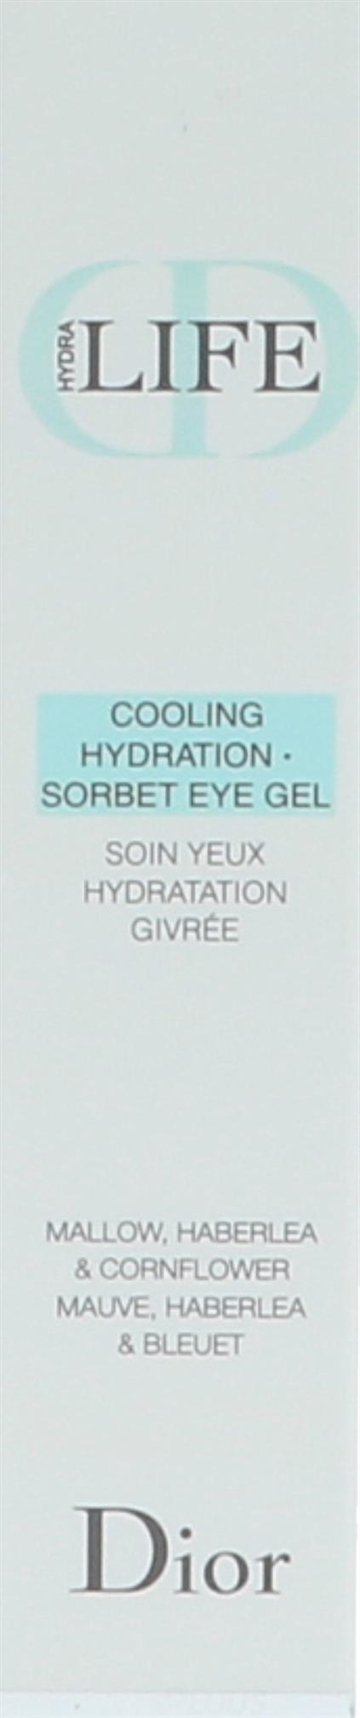 Dior Hydra Life Cooling Hydration - Sorbet Eye Gel 15ml